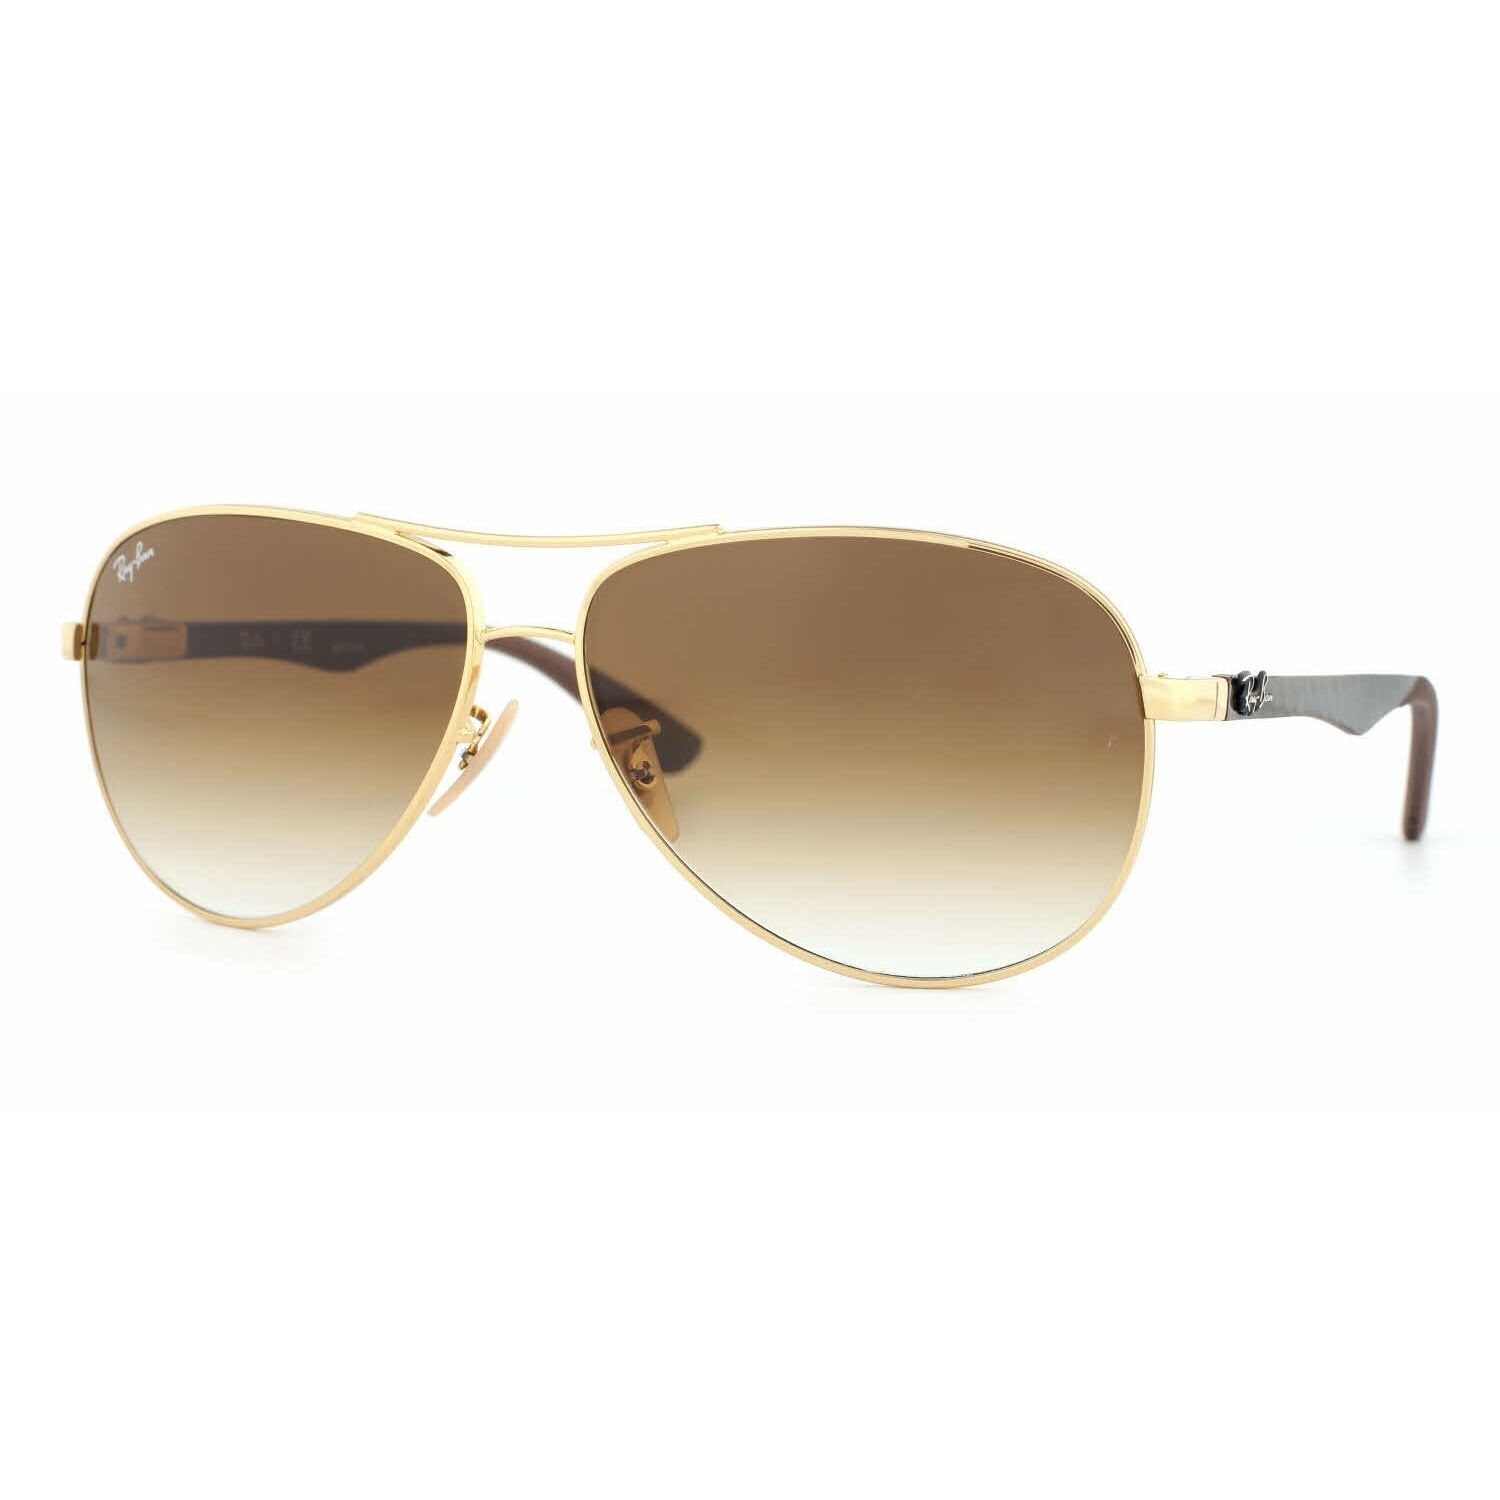 dd3669a3b8f0 Ray Ban Shades Light Filter Blinds In 2 Inch Sections « One More Soul